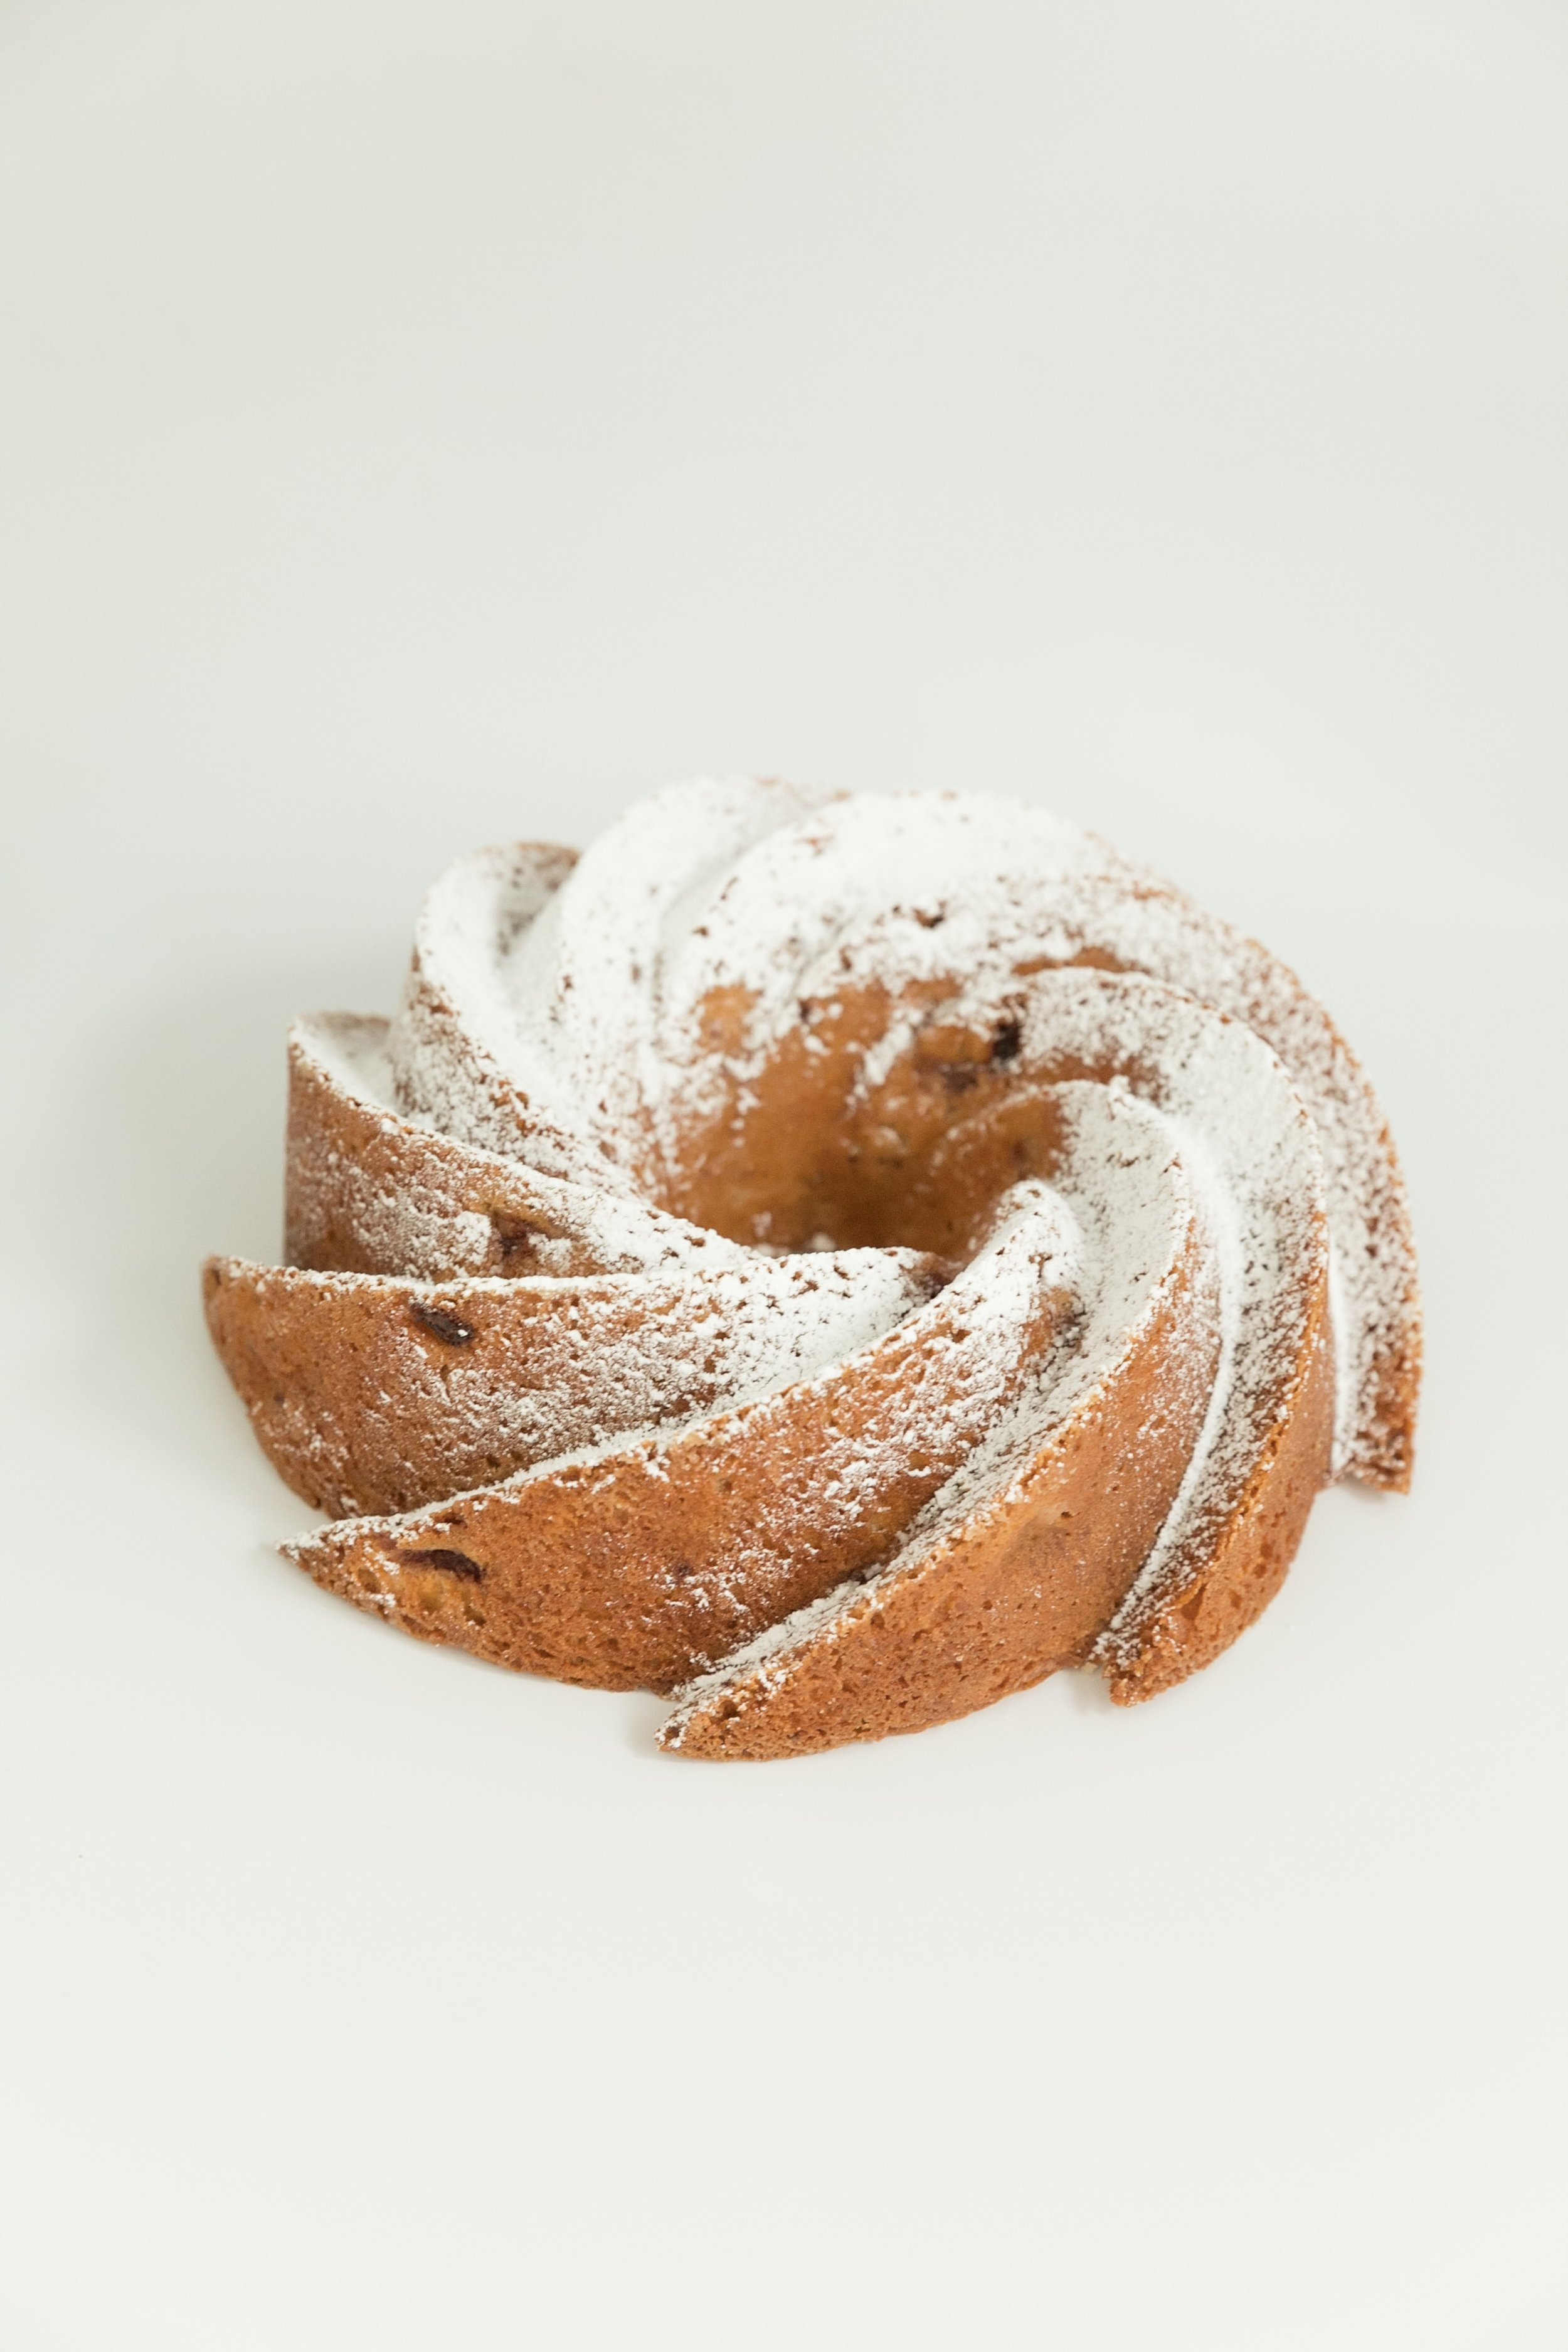 strawberry bundt cake topped with a light dusting of powdered sugar